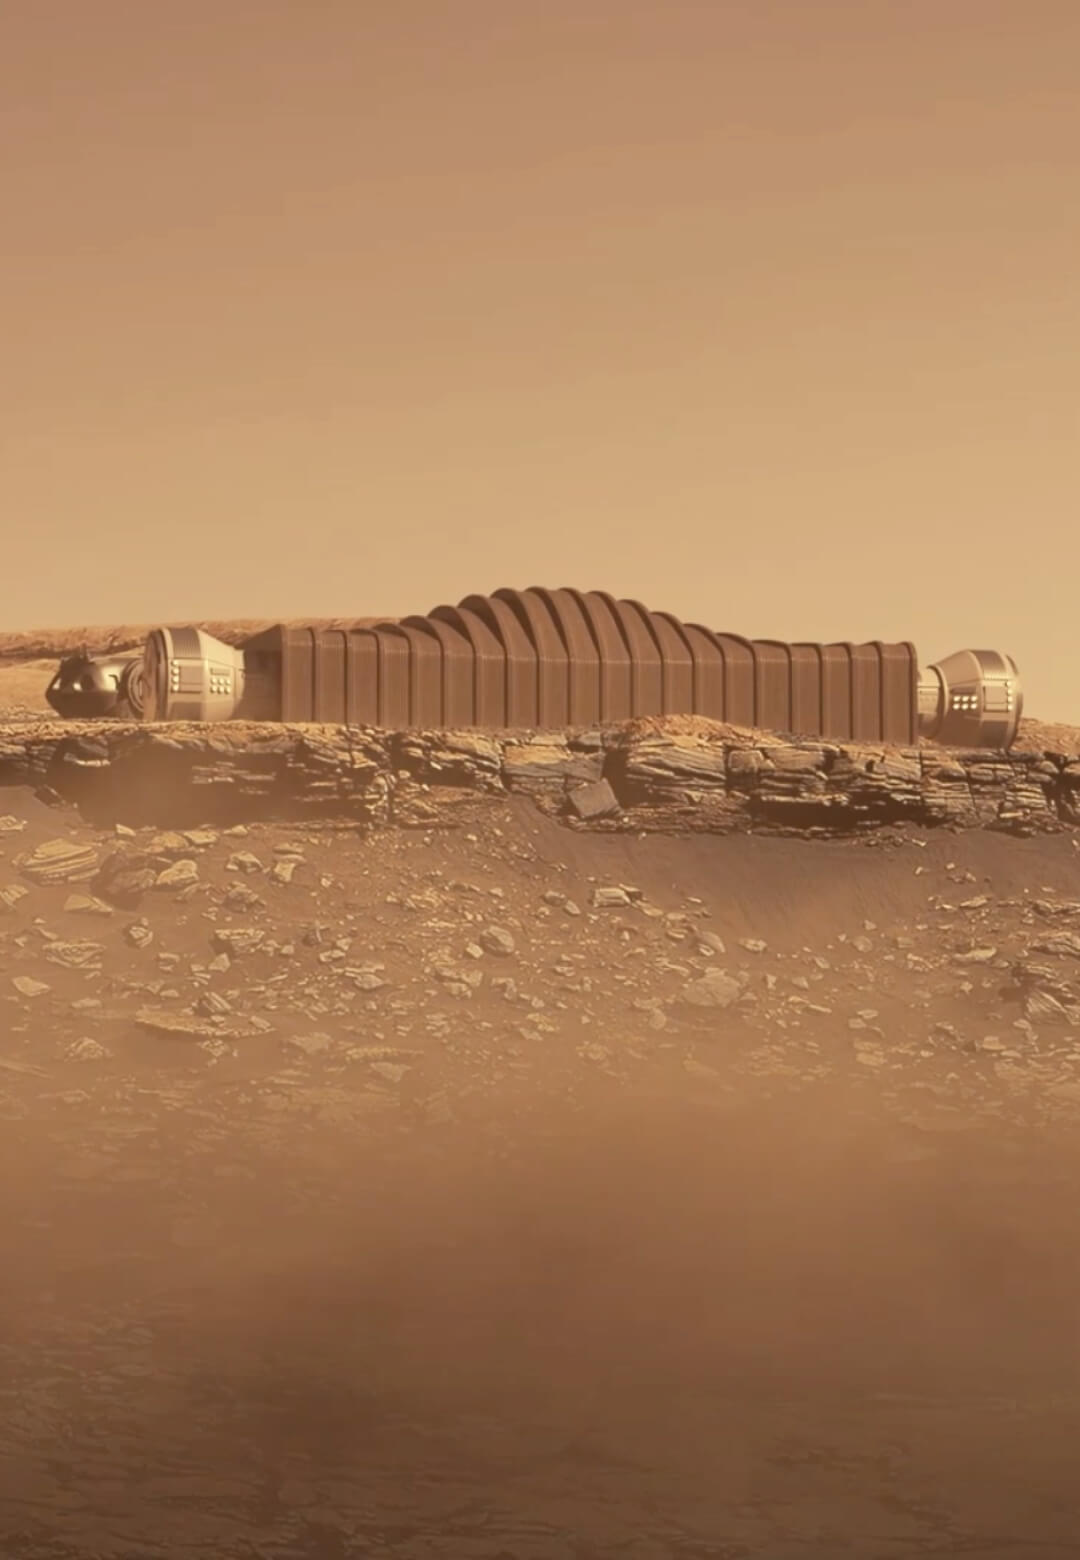 Bjarke Ingels Group and ICON have collaborated on 3D-printed Martian habitats for NASA's CHAPEA research program   Mars Dune Alpha by Bjarke Ingels Group and ICON   STIRworld